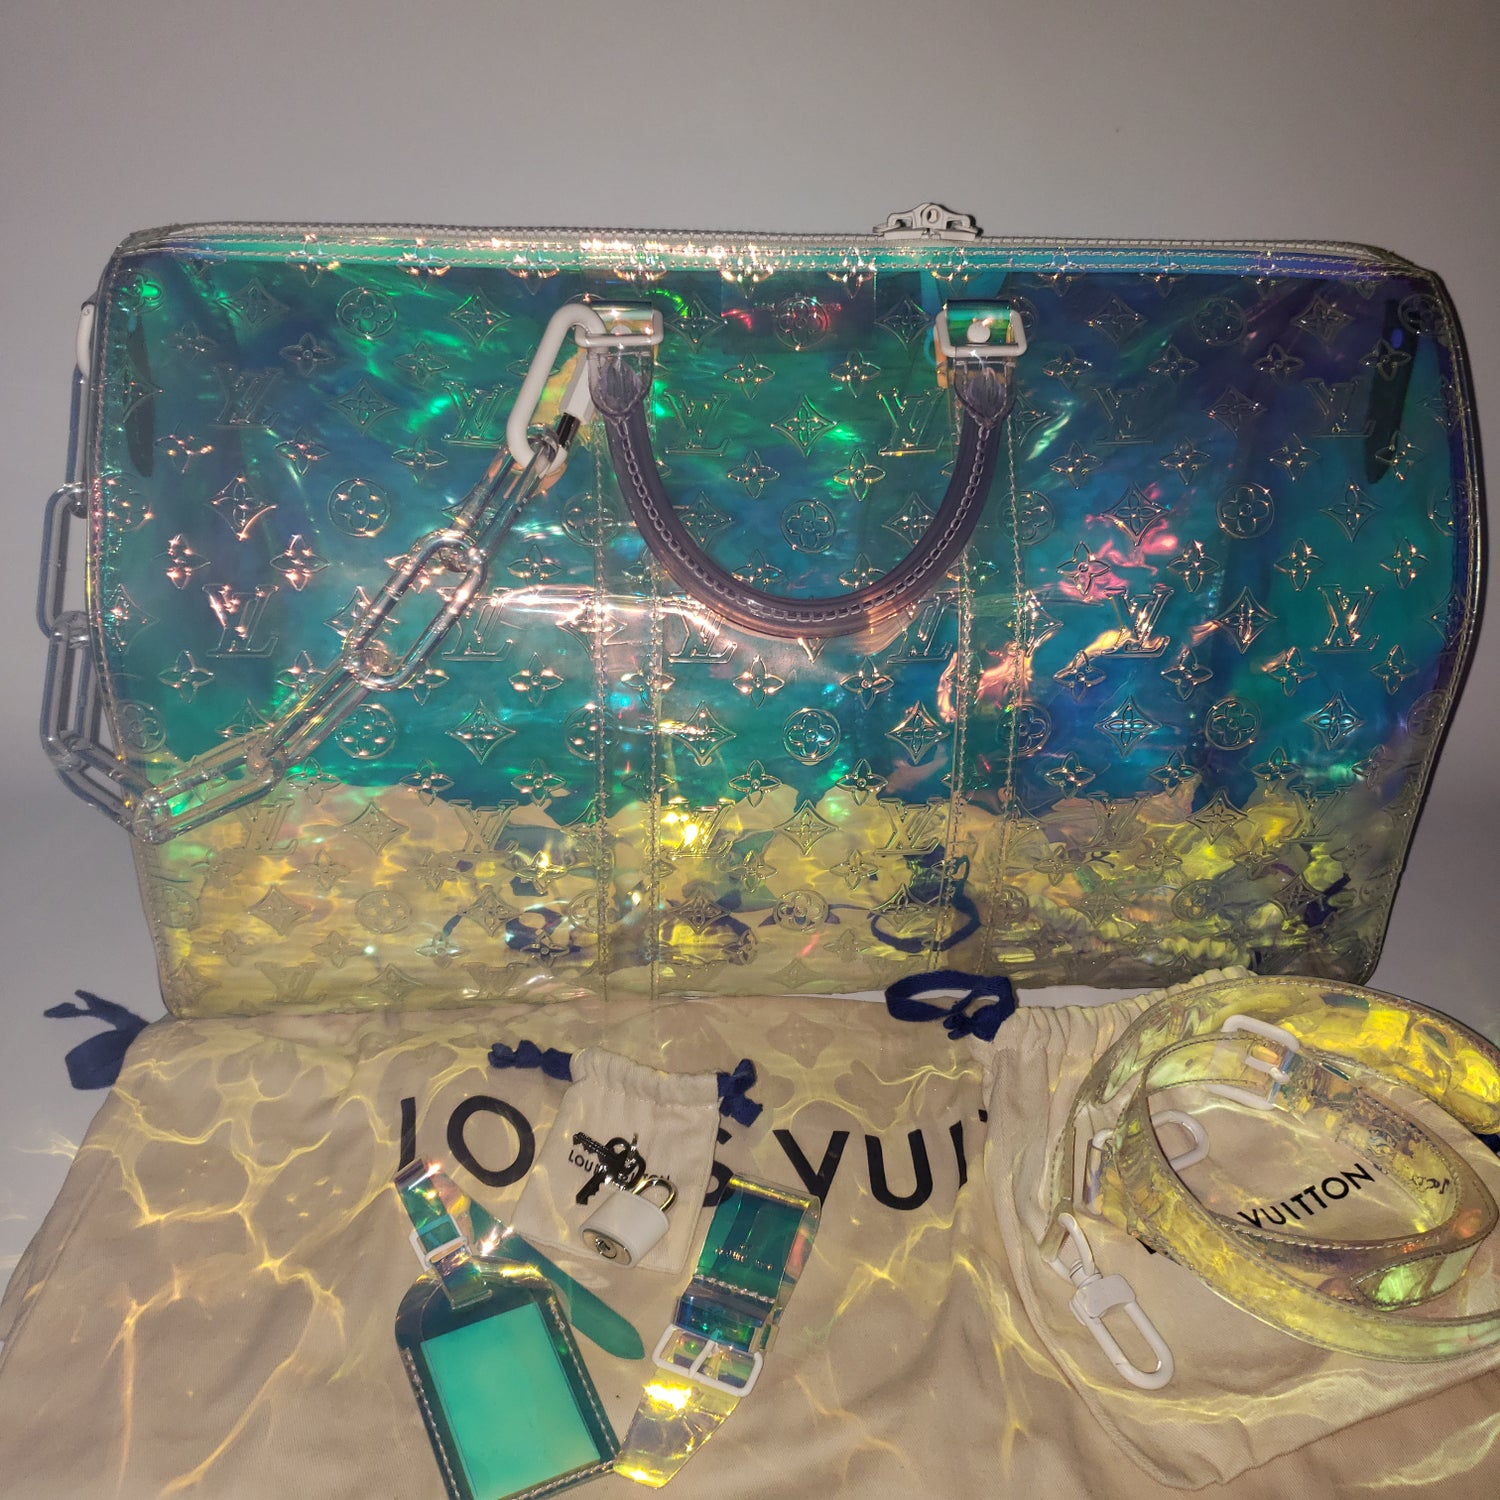 Image of Louis Vuitton Keepall Bandoulliere 50 prism